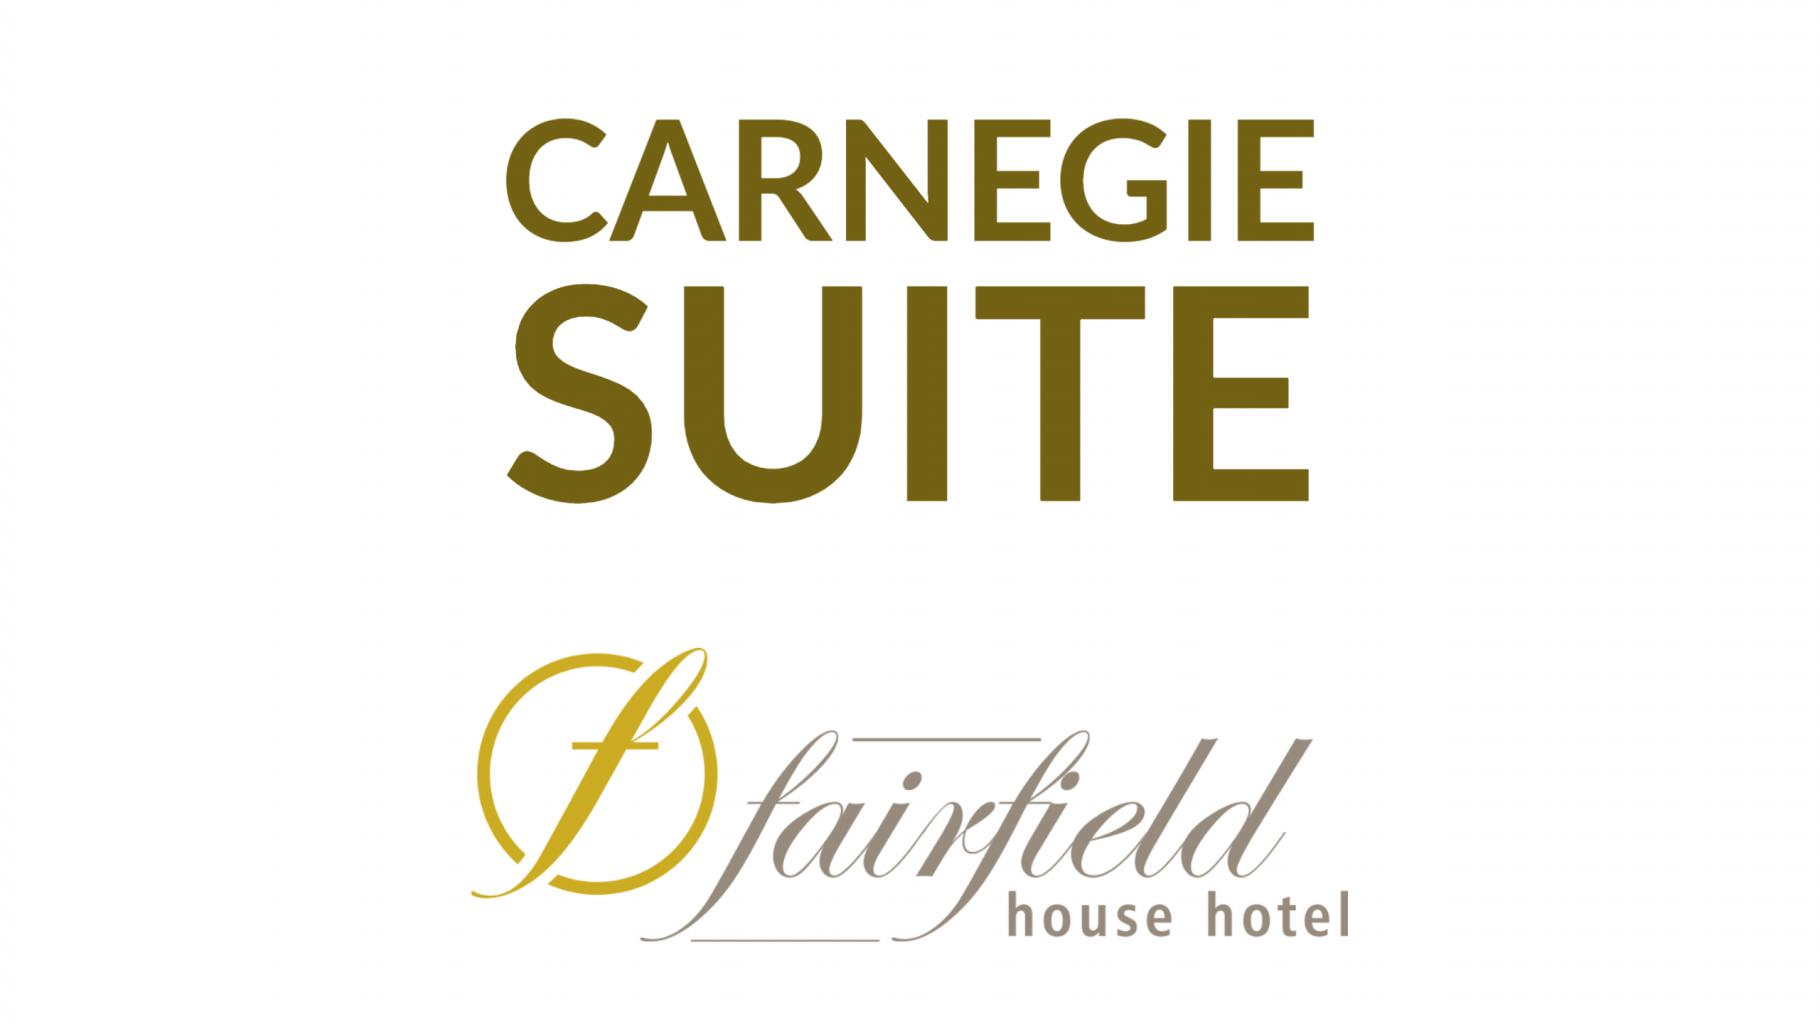 The Carnegie Suite is one of the finest luxury suites in Ayrshire and offers a large lounge area as well as a bedroom with carved Four Poster Bed